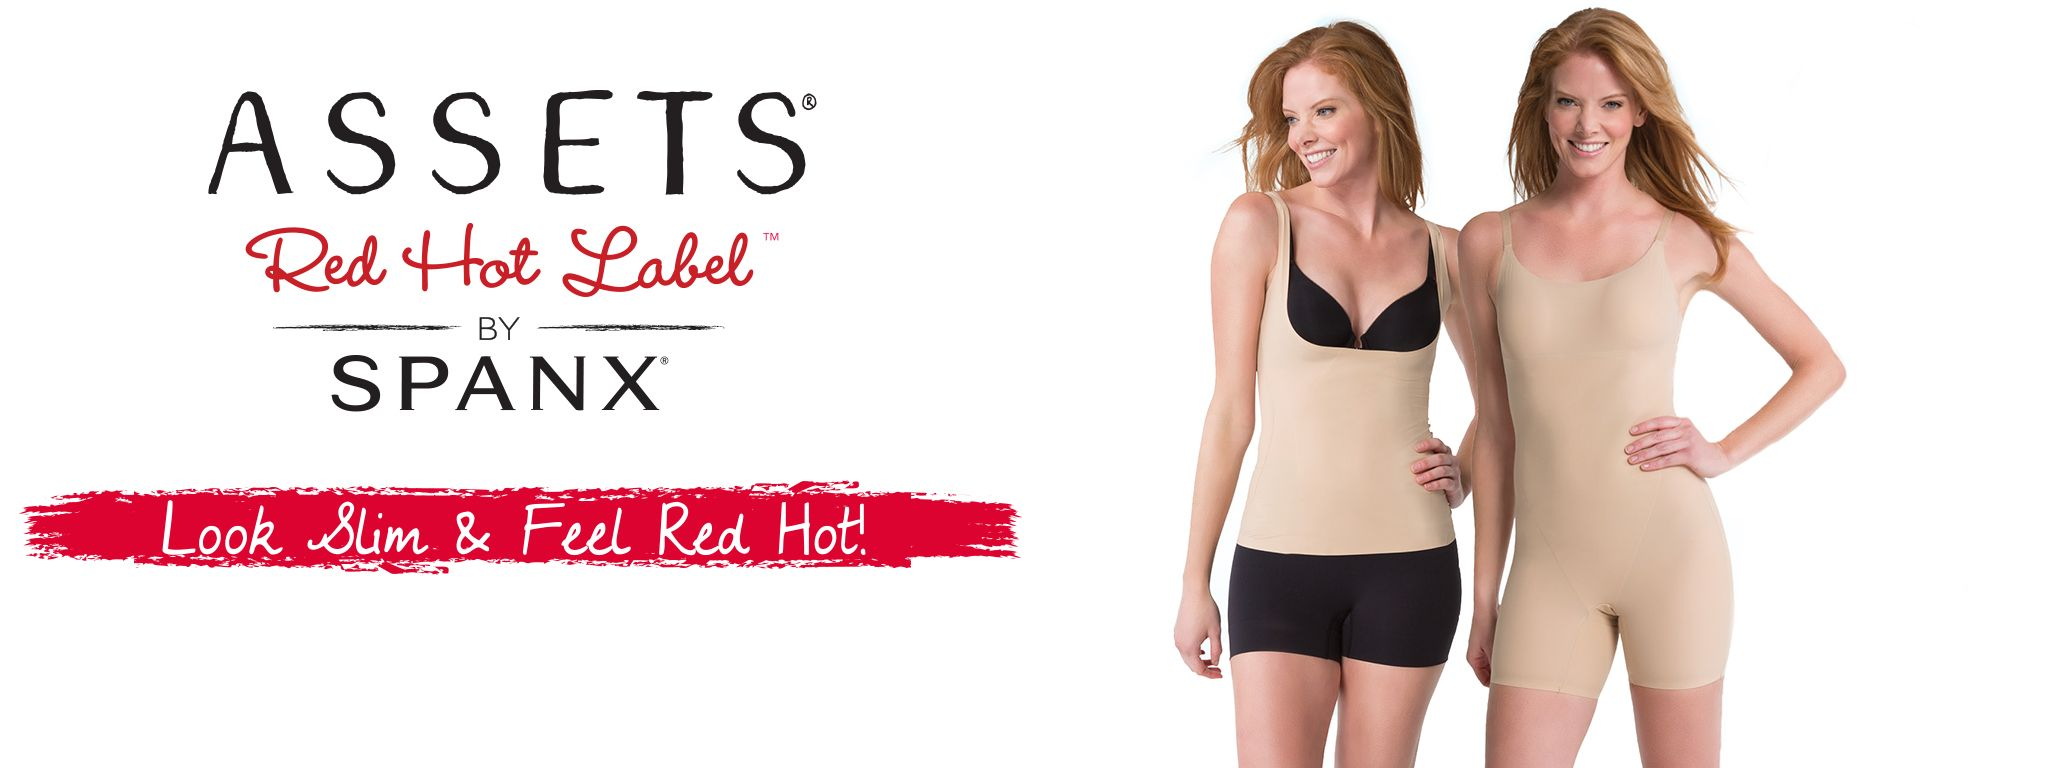 Assets Red Hot Label by Spanx Logo & 2 Spanx Models Wearing Spanx Attire